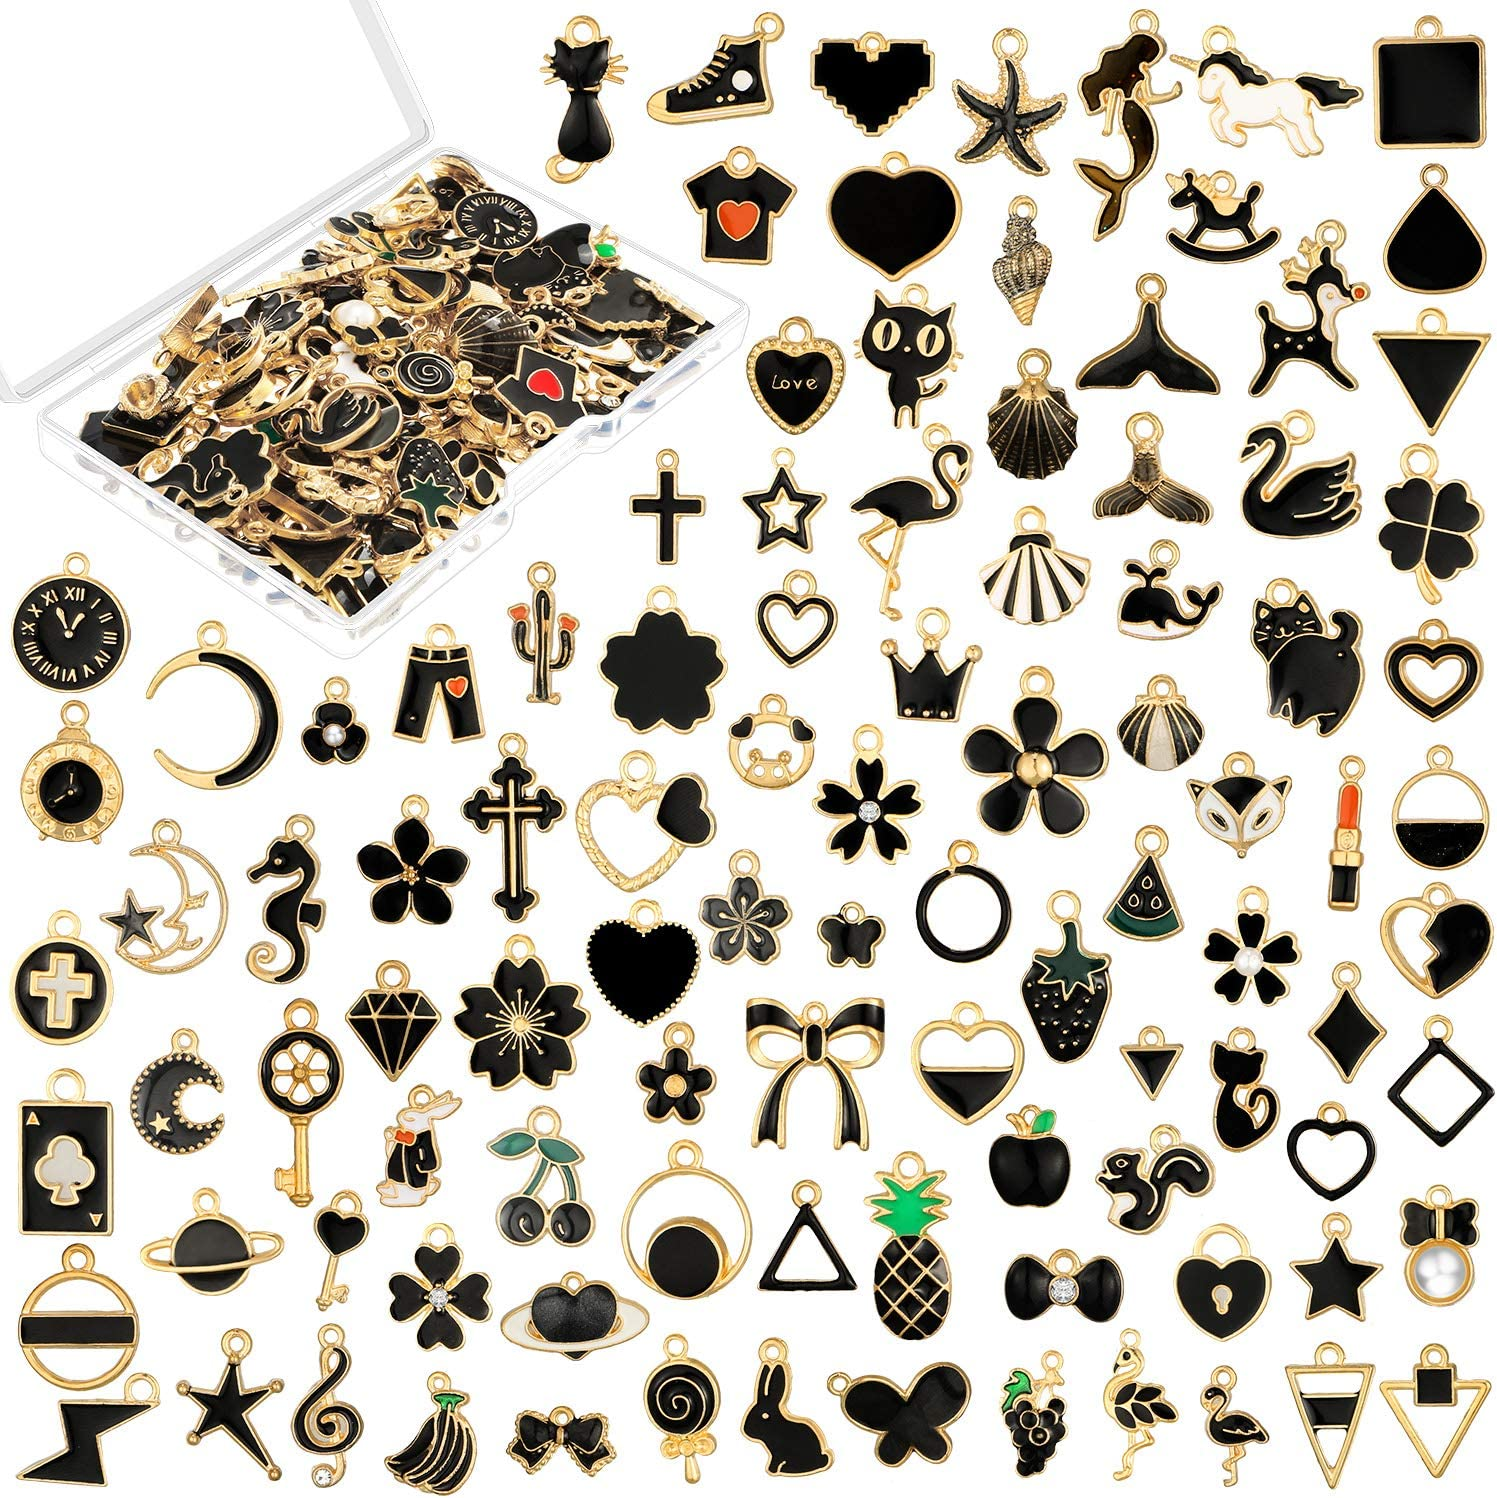 100 Pieces Black Assorted Enamel Pendants Gold Plated Dangle Charms Black Theme DIY Charms Animal Moon Fruit Star Pendant for Necklace Bracelet Jewelry Making Supplies